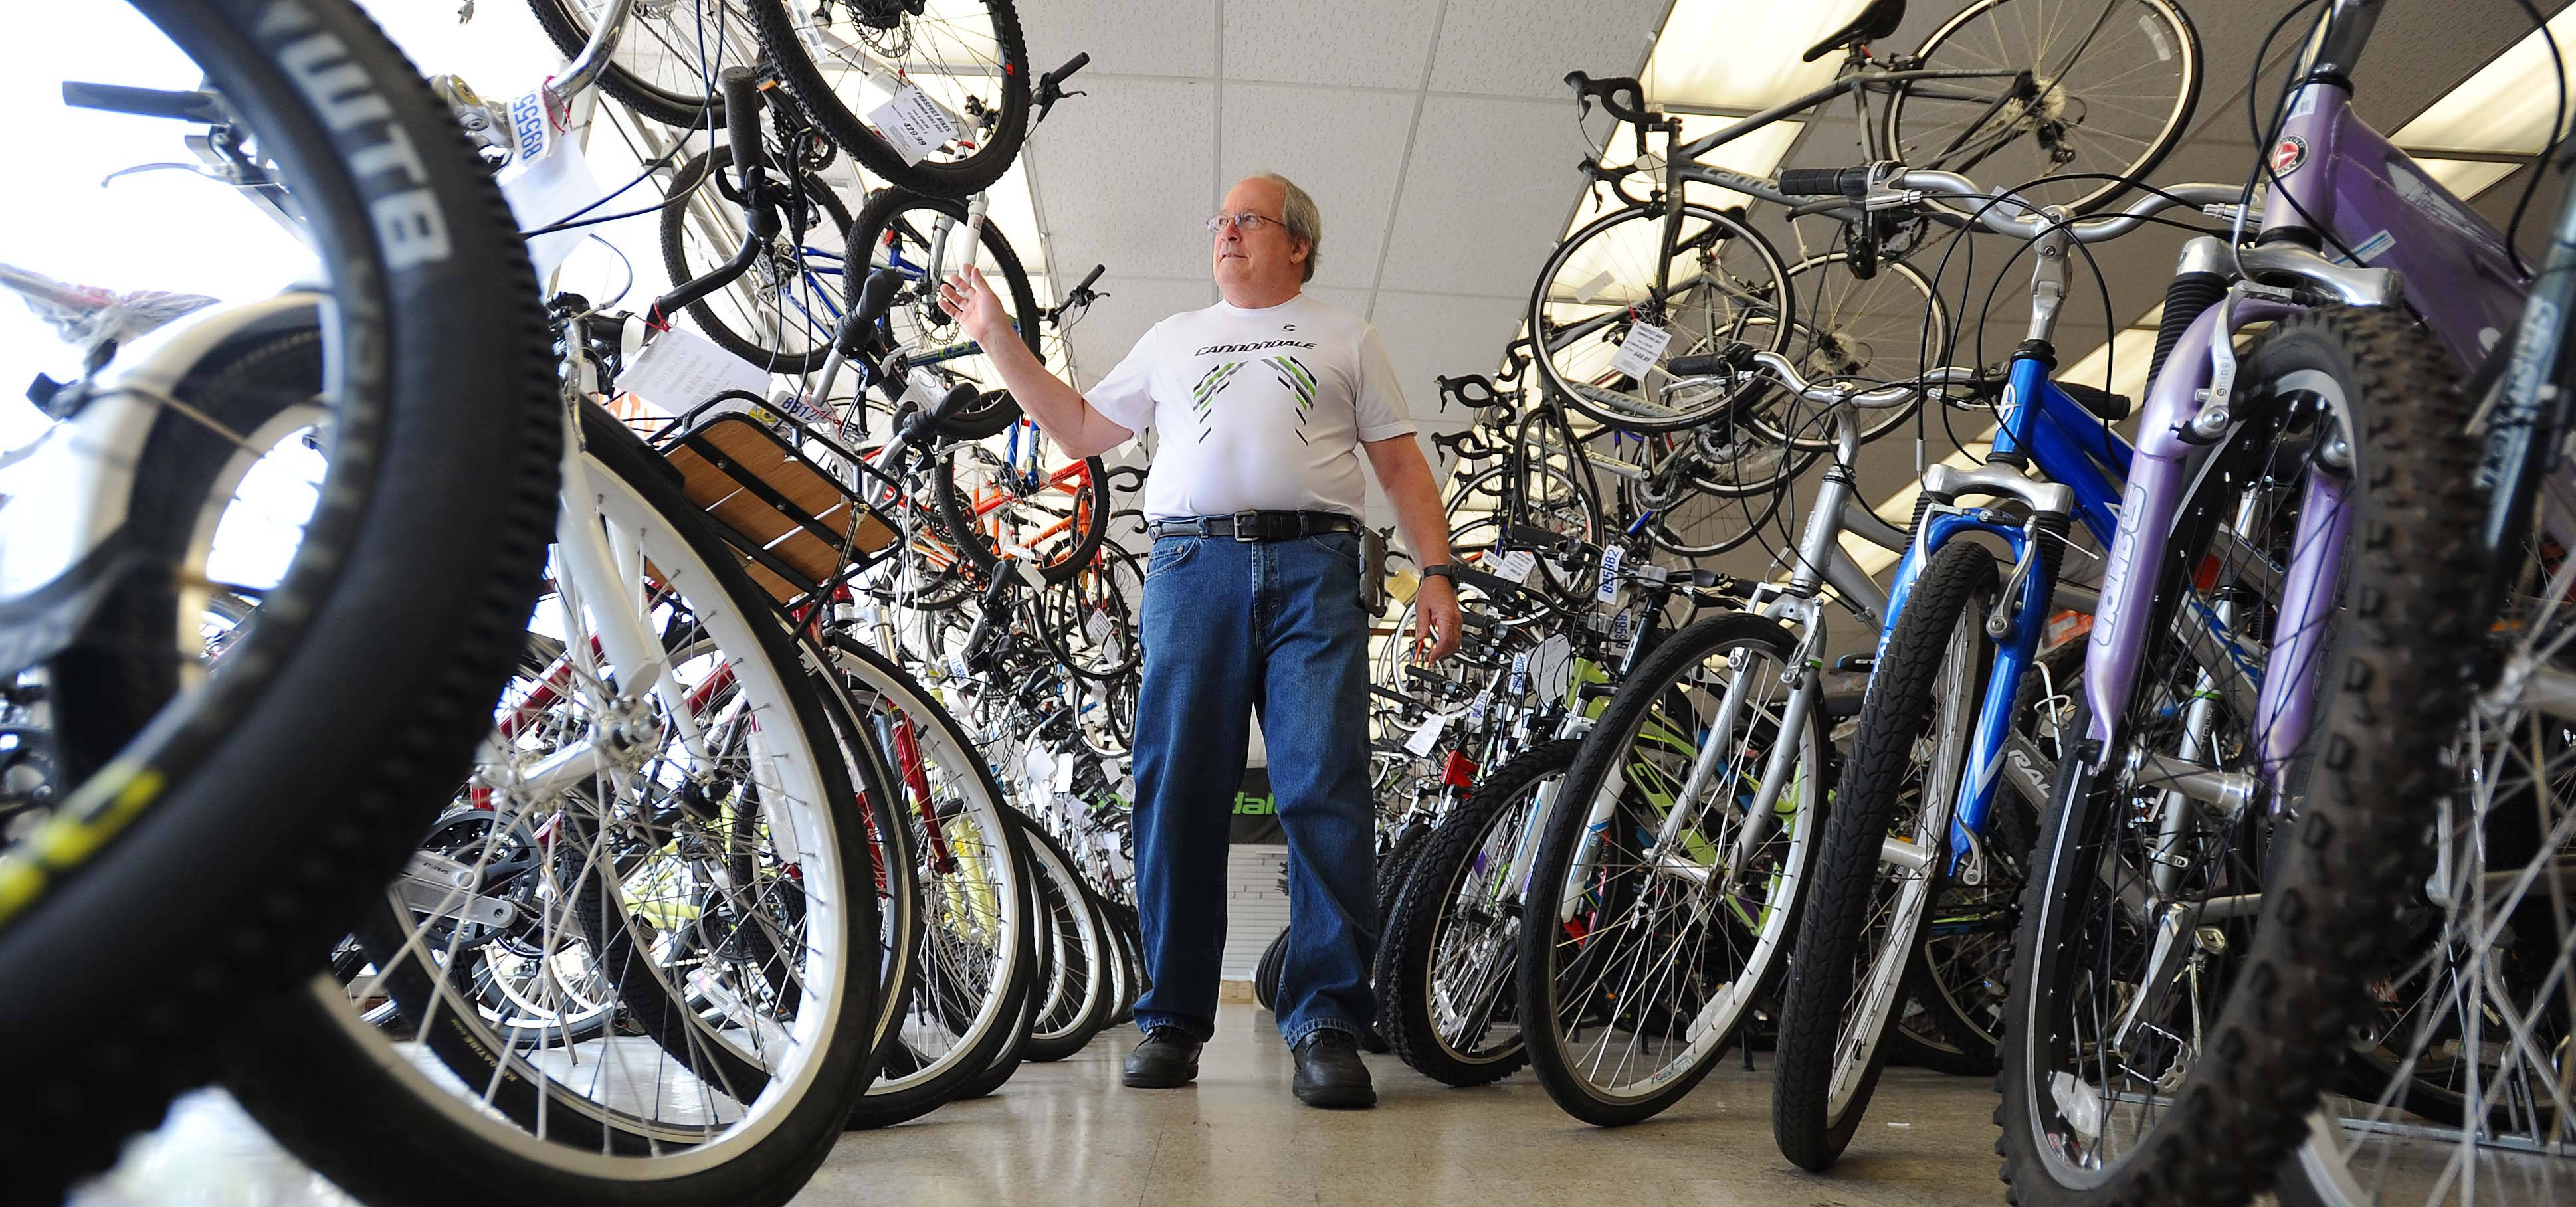 After spending 50 years in the bike business, store owner retiring